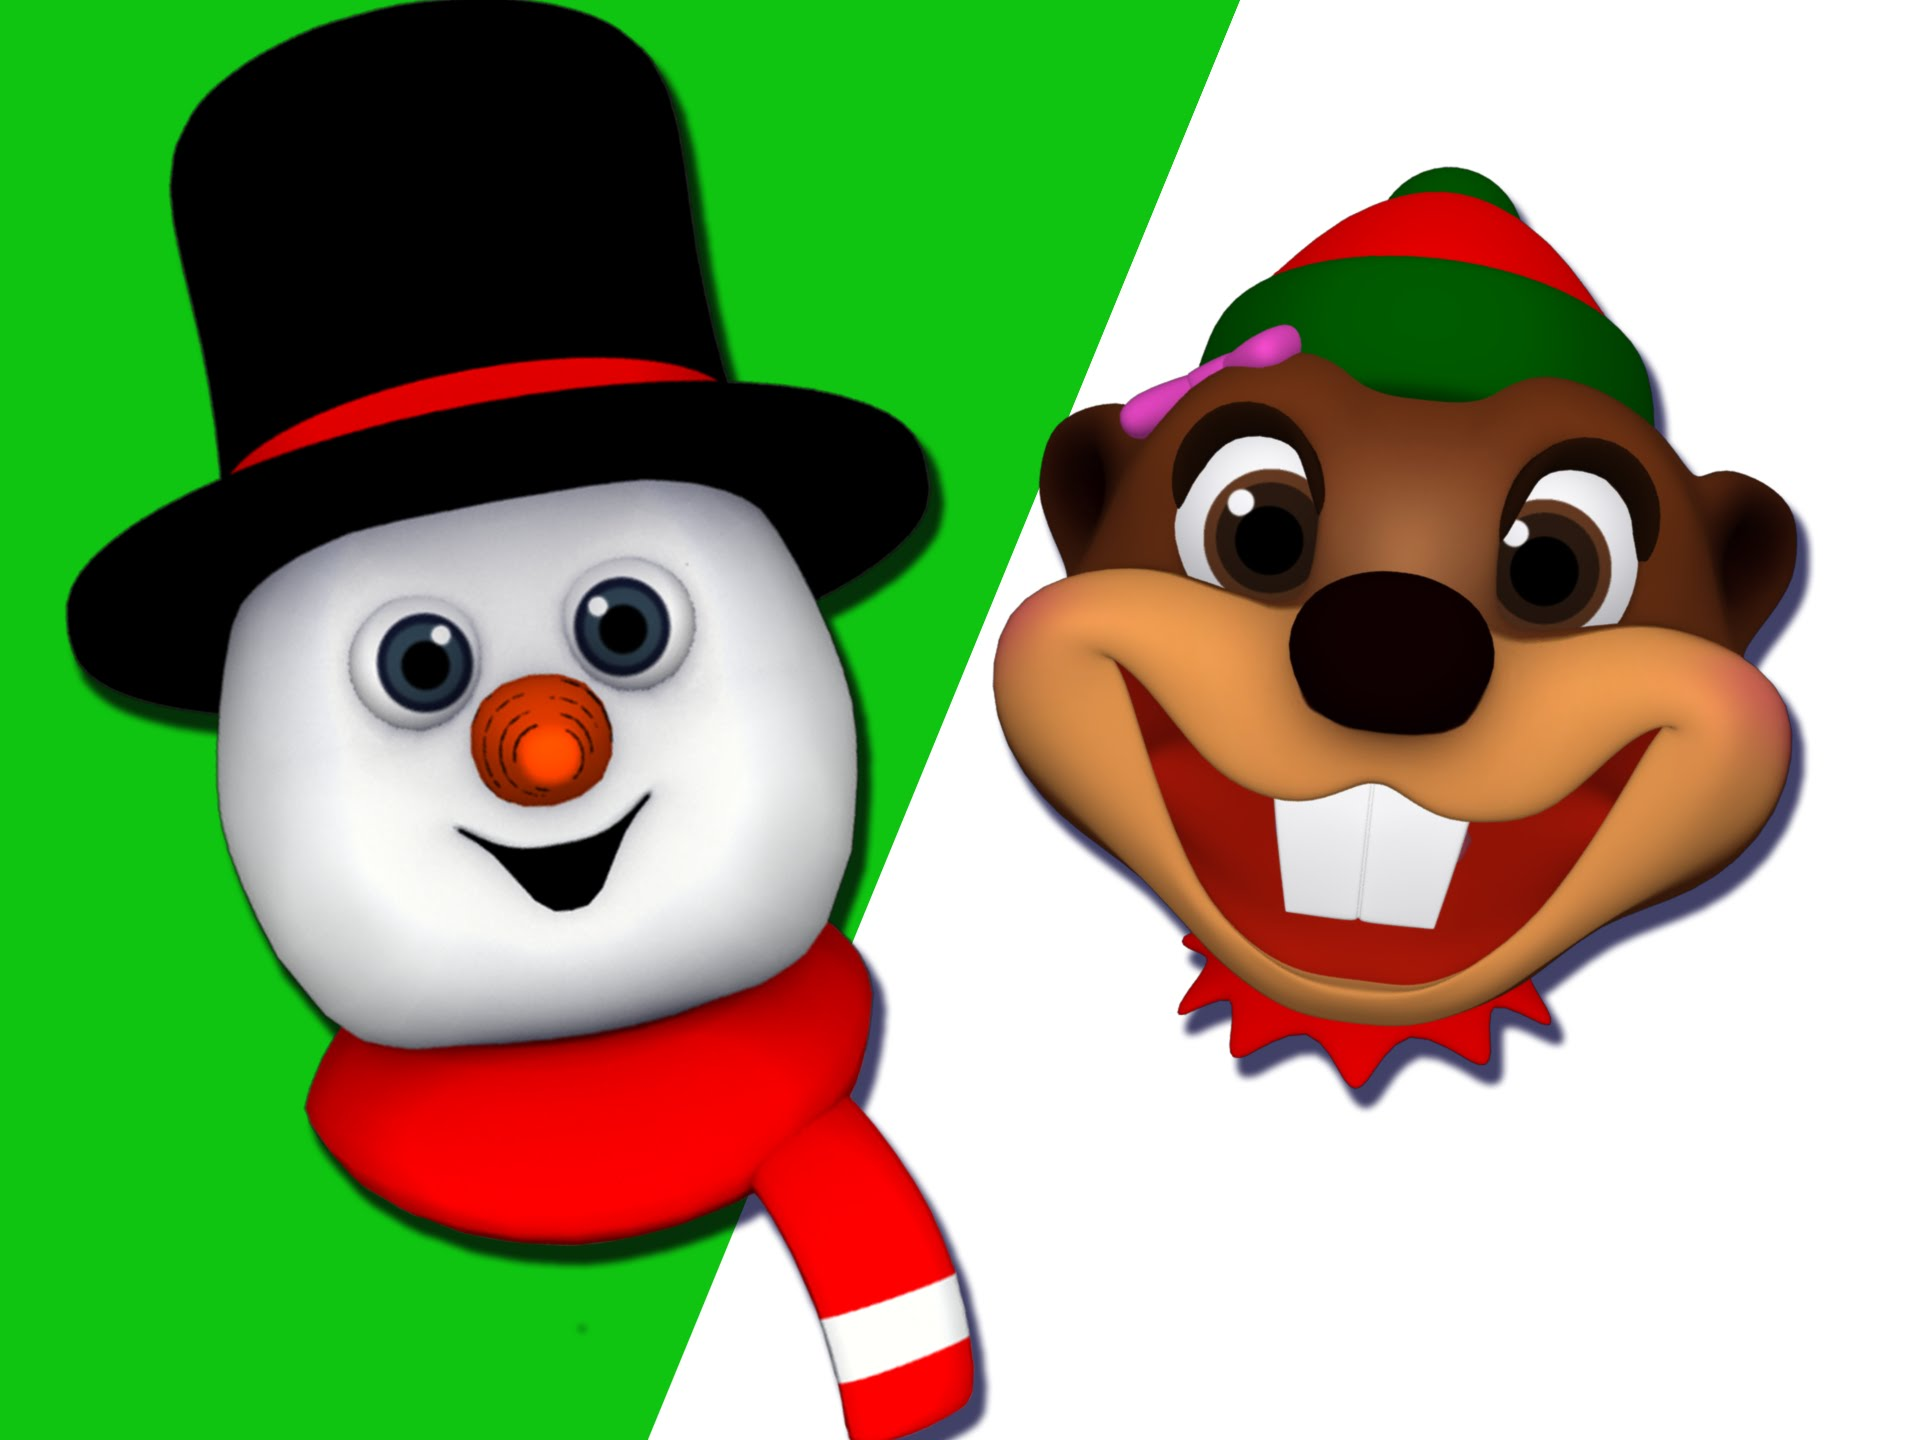 Mr frost tee baby. Caroling clipart singingclip